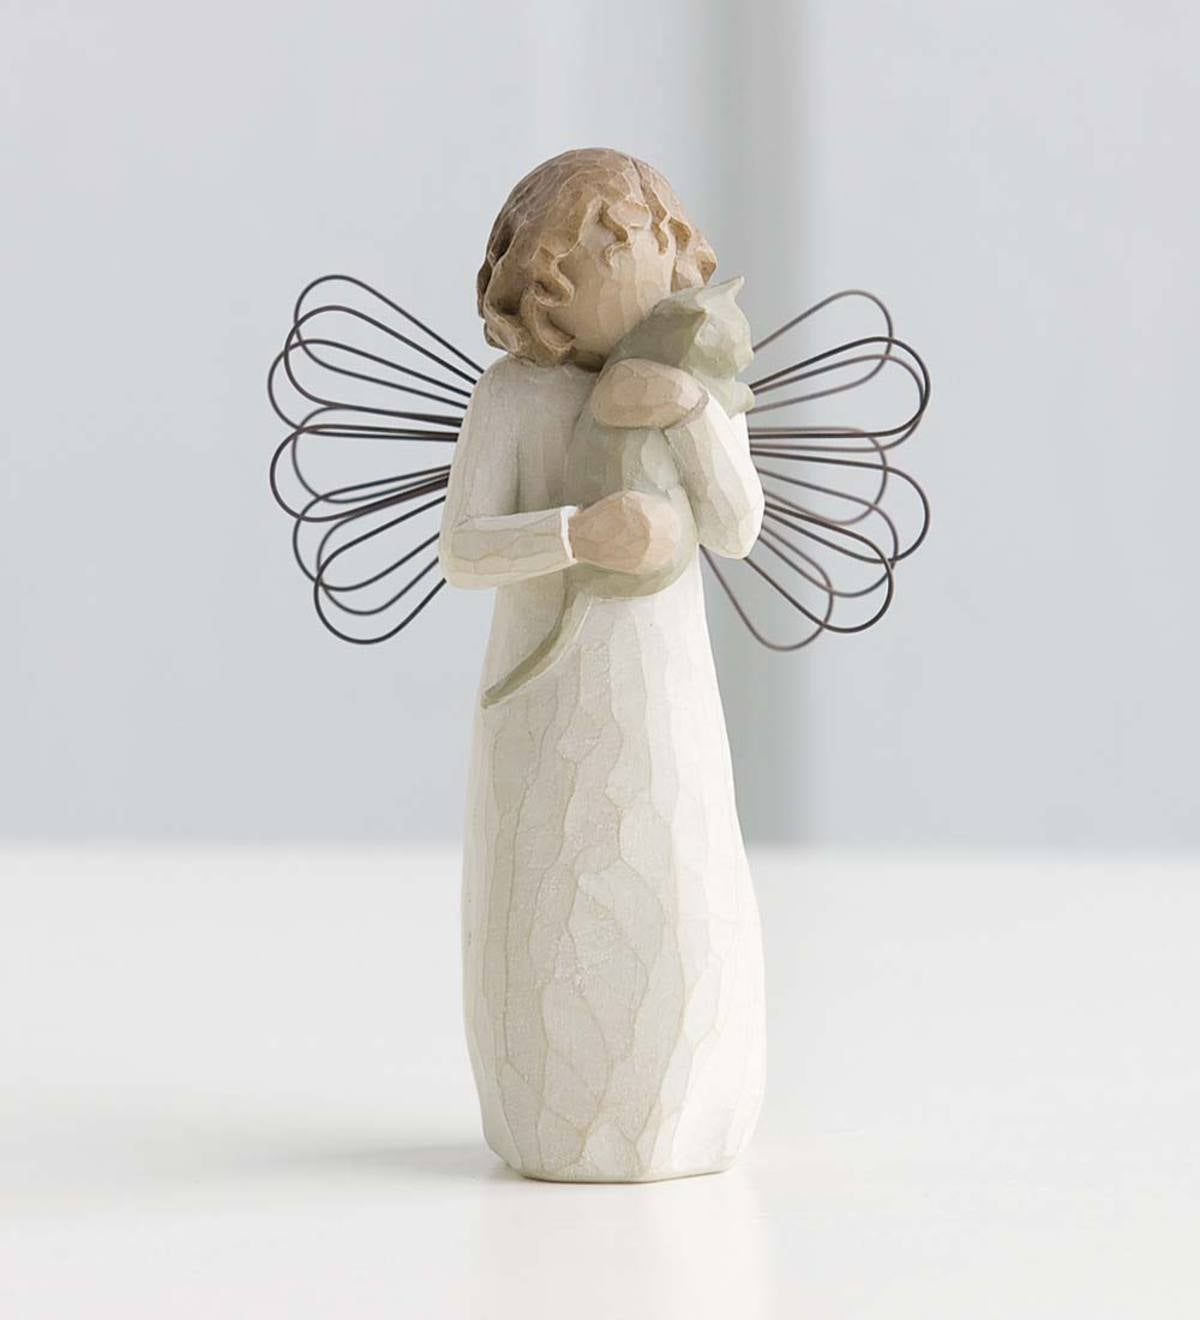 Willow Tree &quote;With Affection&quote; Figurine